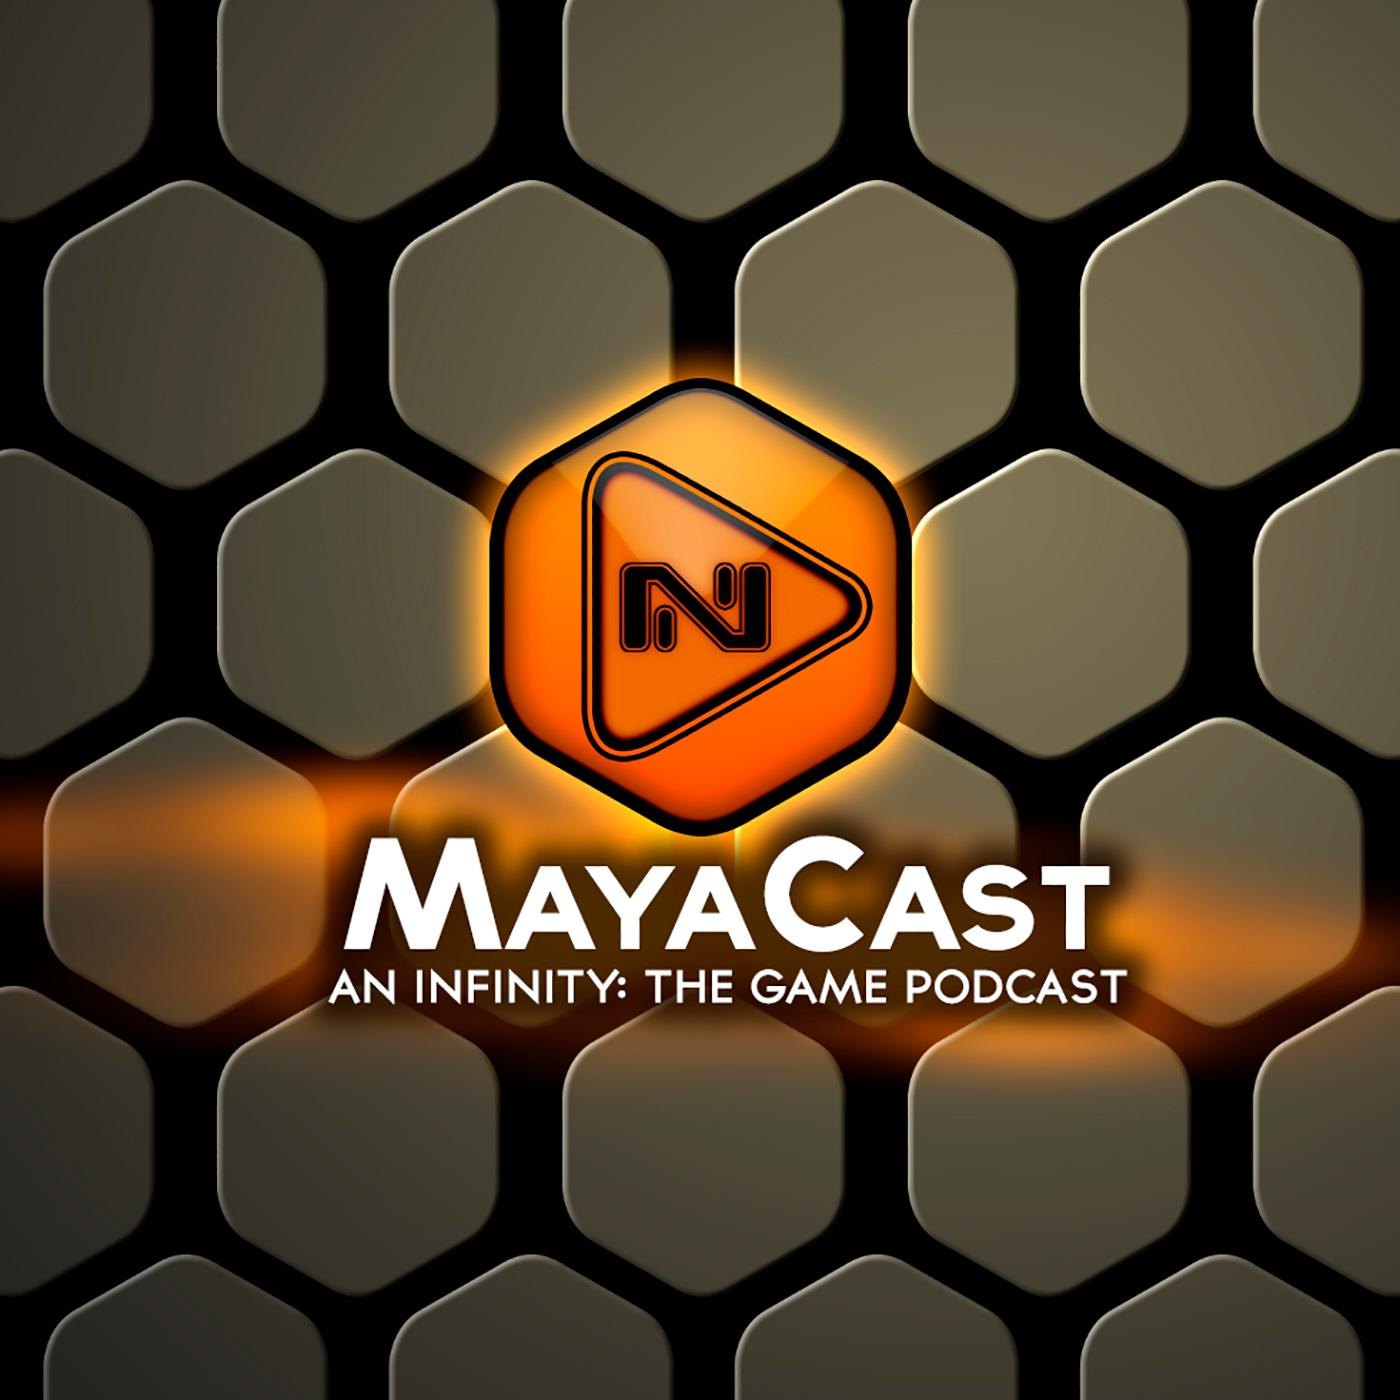 MayaCast Episode 120: A Conversational Podcast